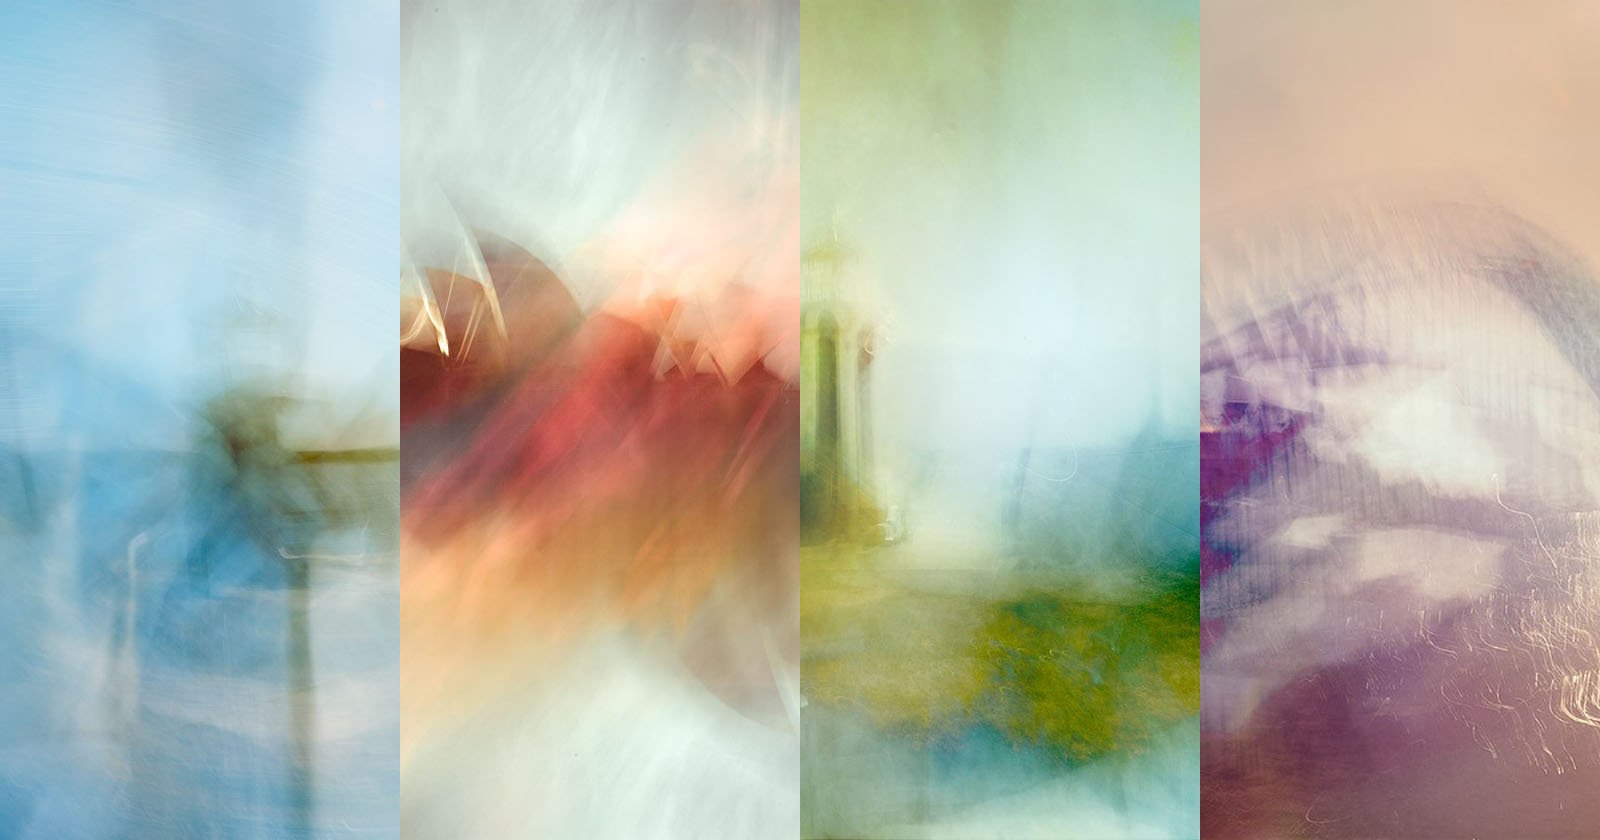 An Intro to Intentional Camera Movement (ICM) Photography